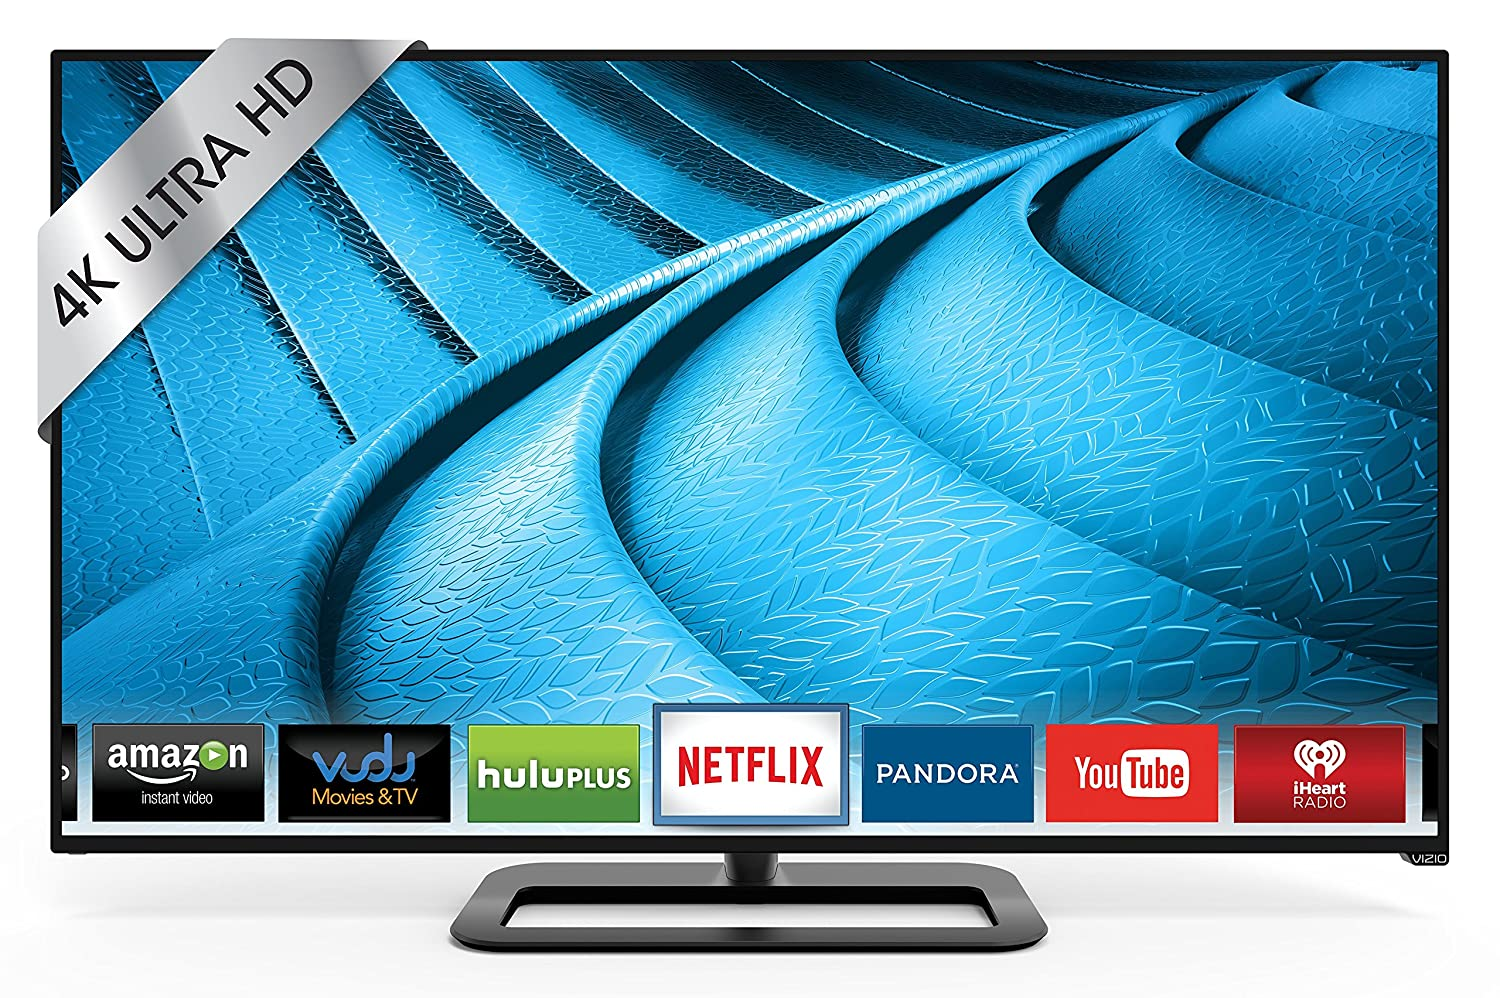 VIZIO P552ui-B2 55-Inch 4K Ultra HD Smart LED HDTV (2014 Model)